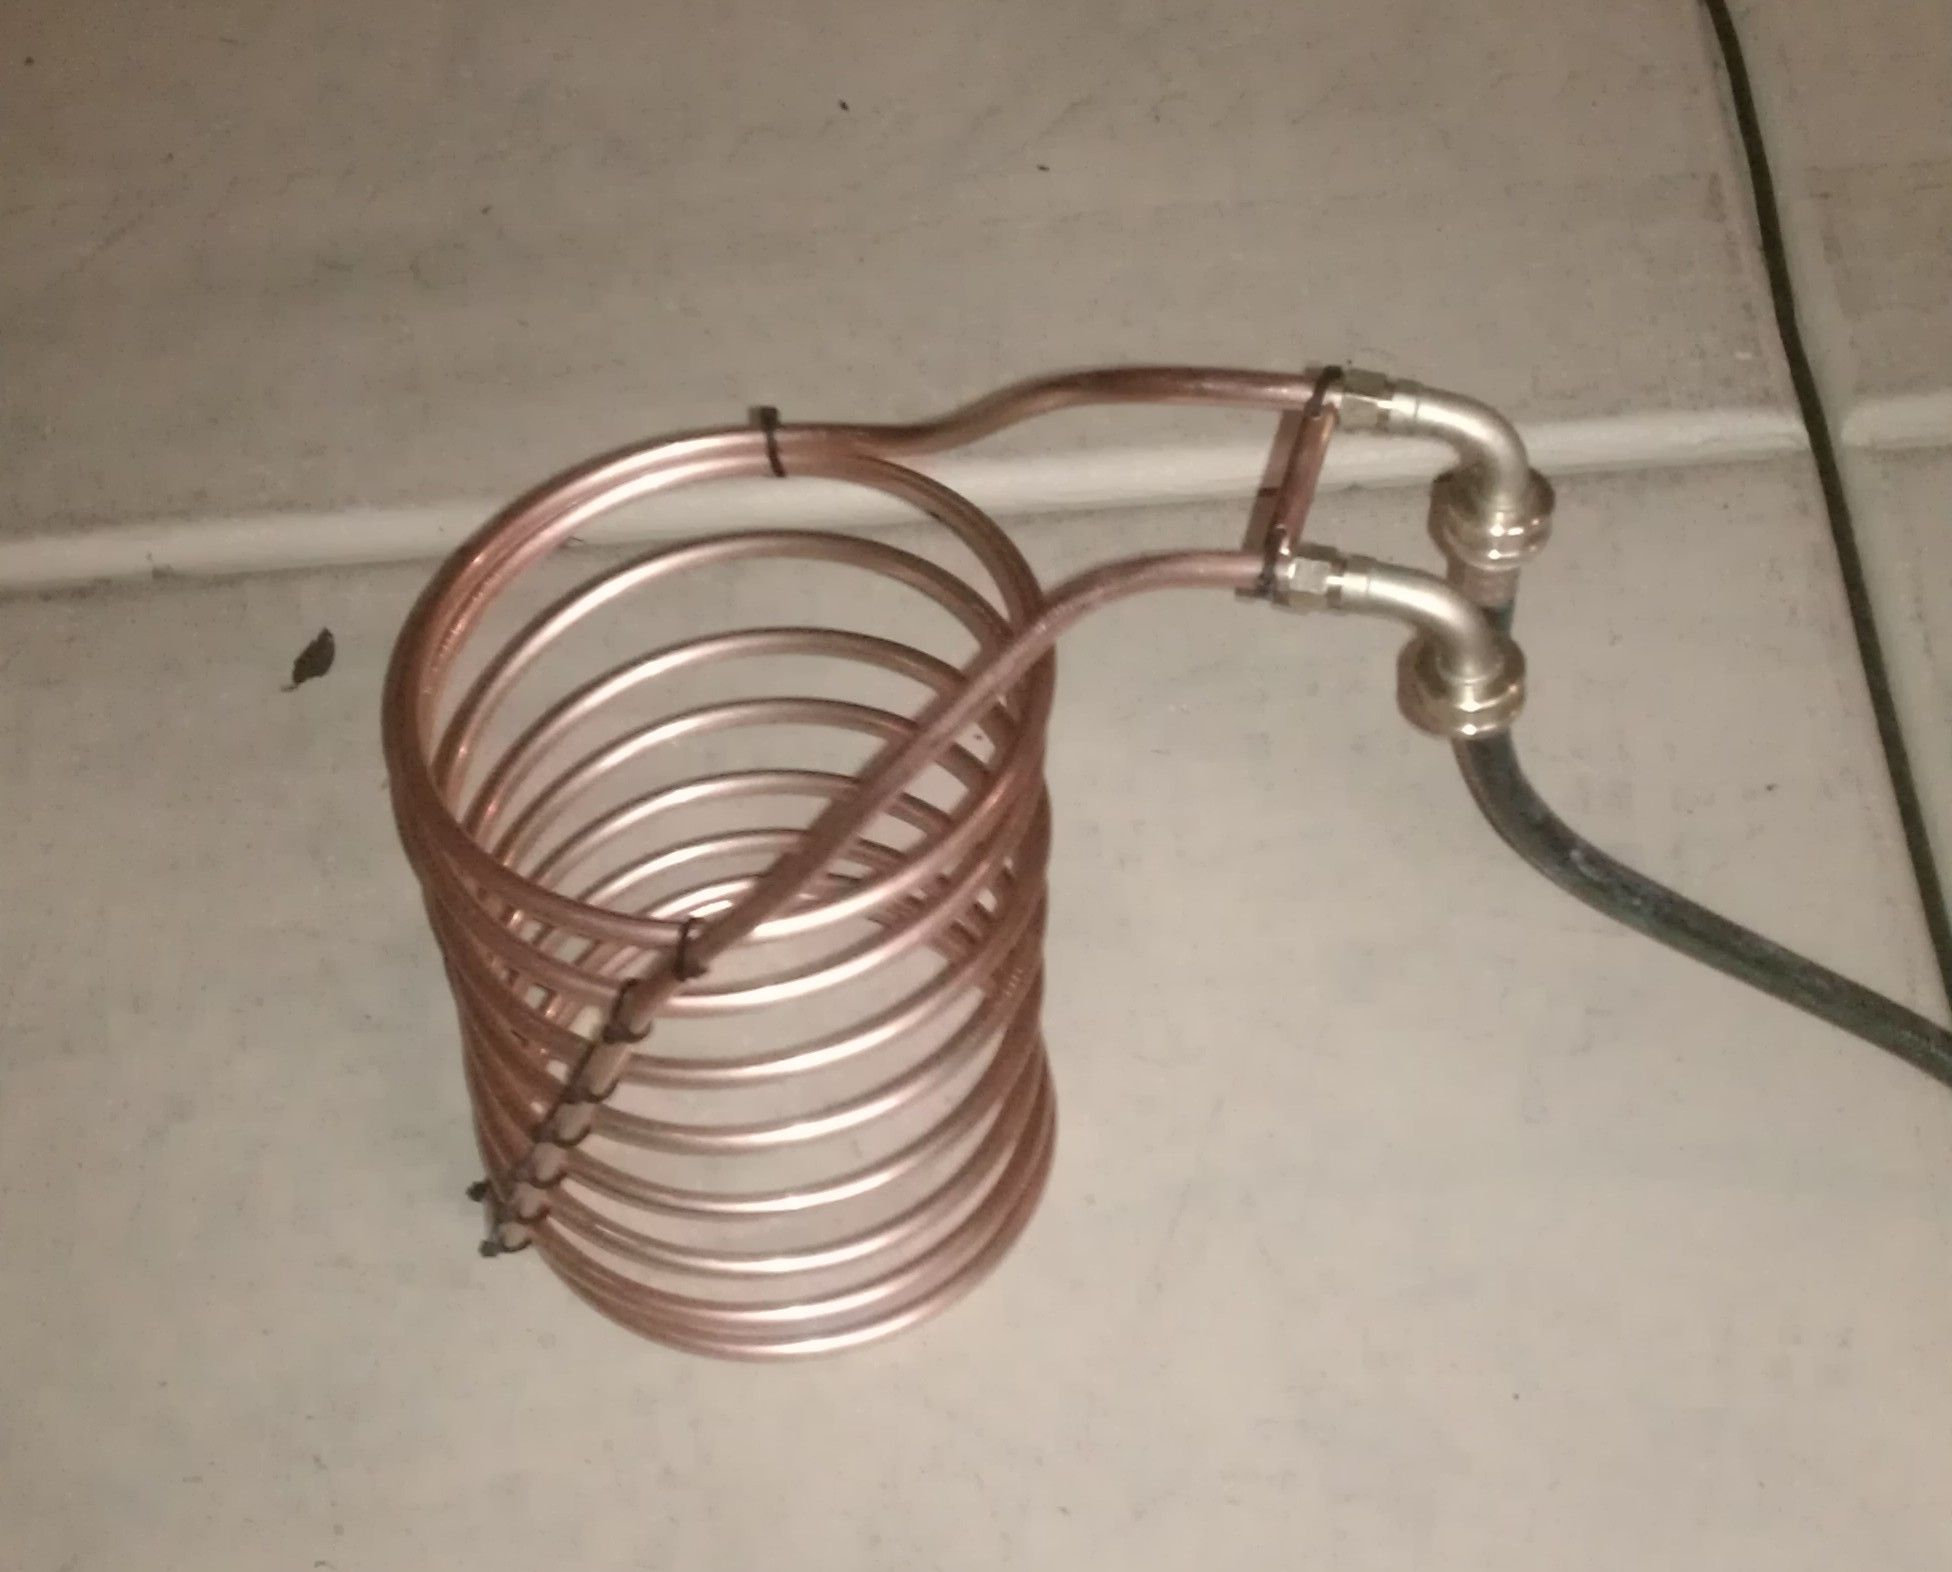 Diy immersion wort chiller with images home brewing